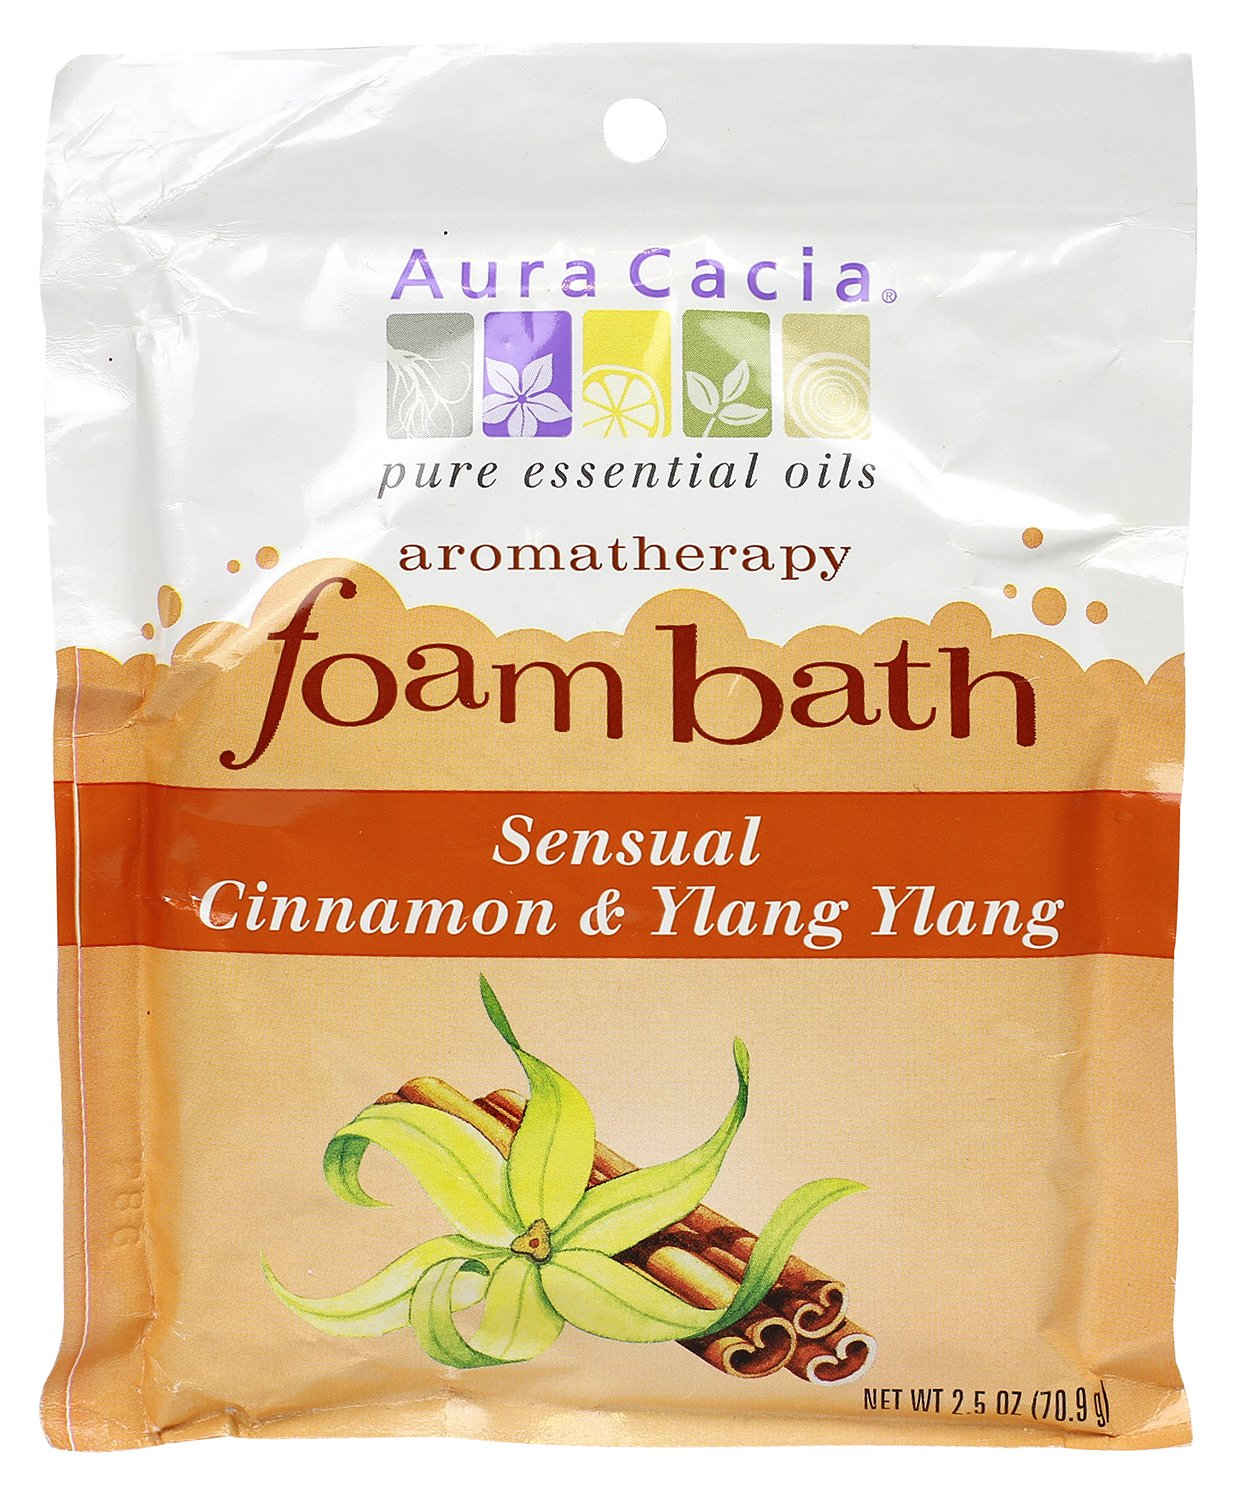 Aura Cacia Aromatherapy Foam Bath, Relaxing Lavender, 2.5 ounce packet (Pack of 3) Aub_0037